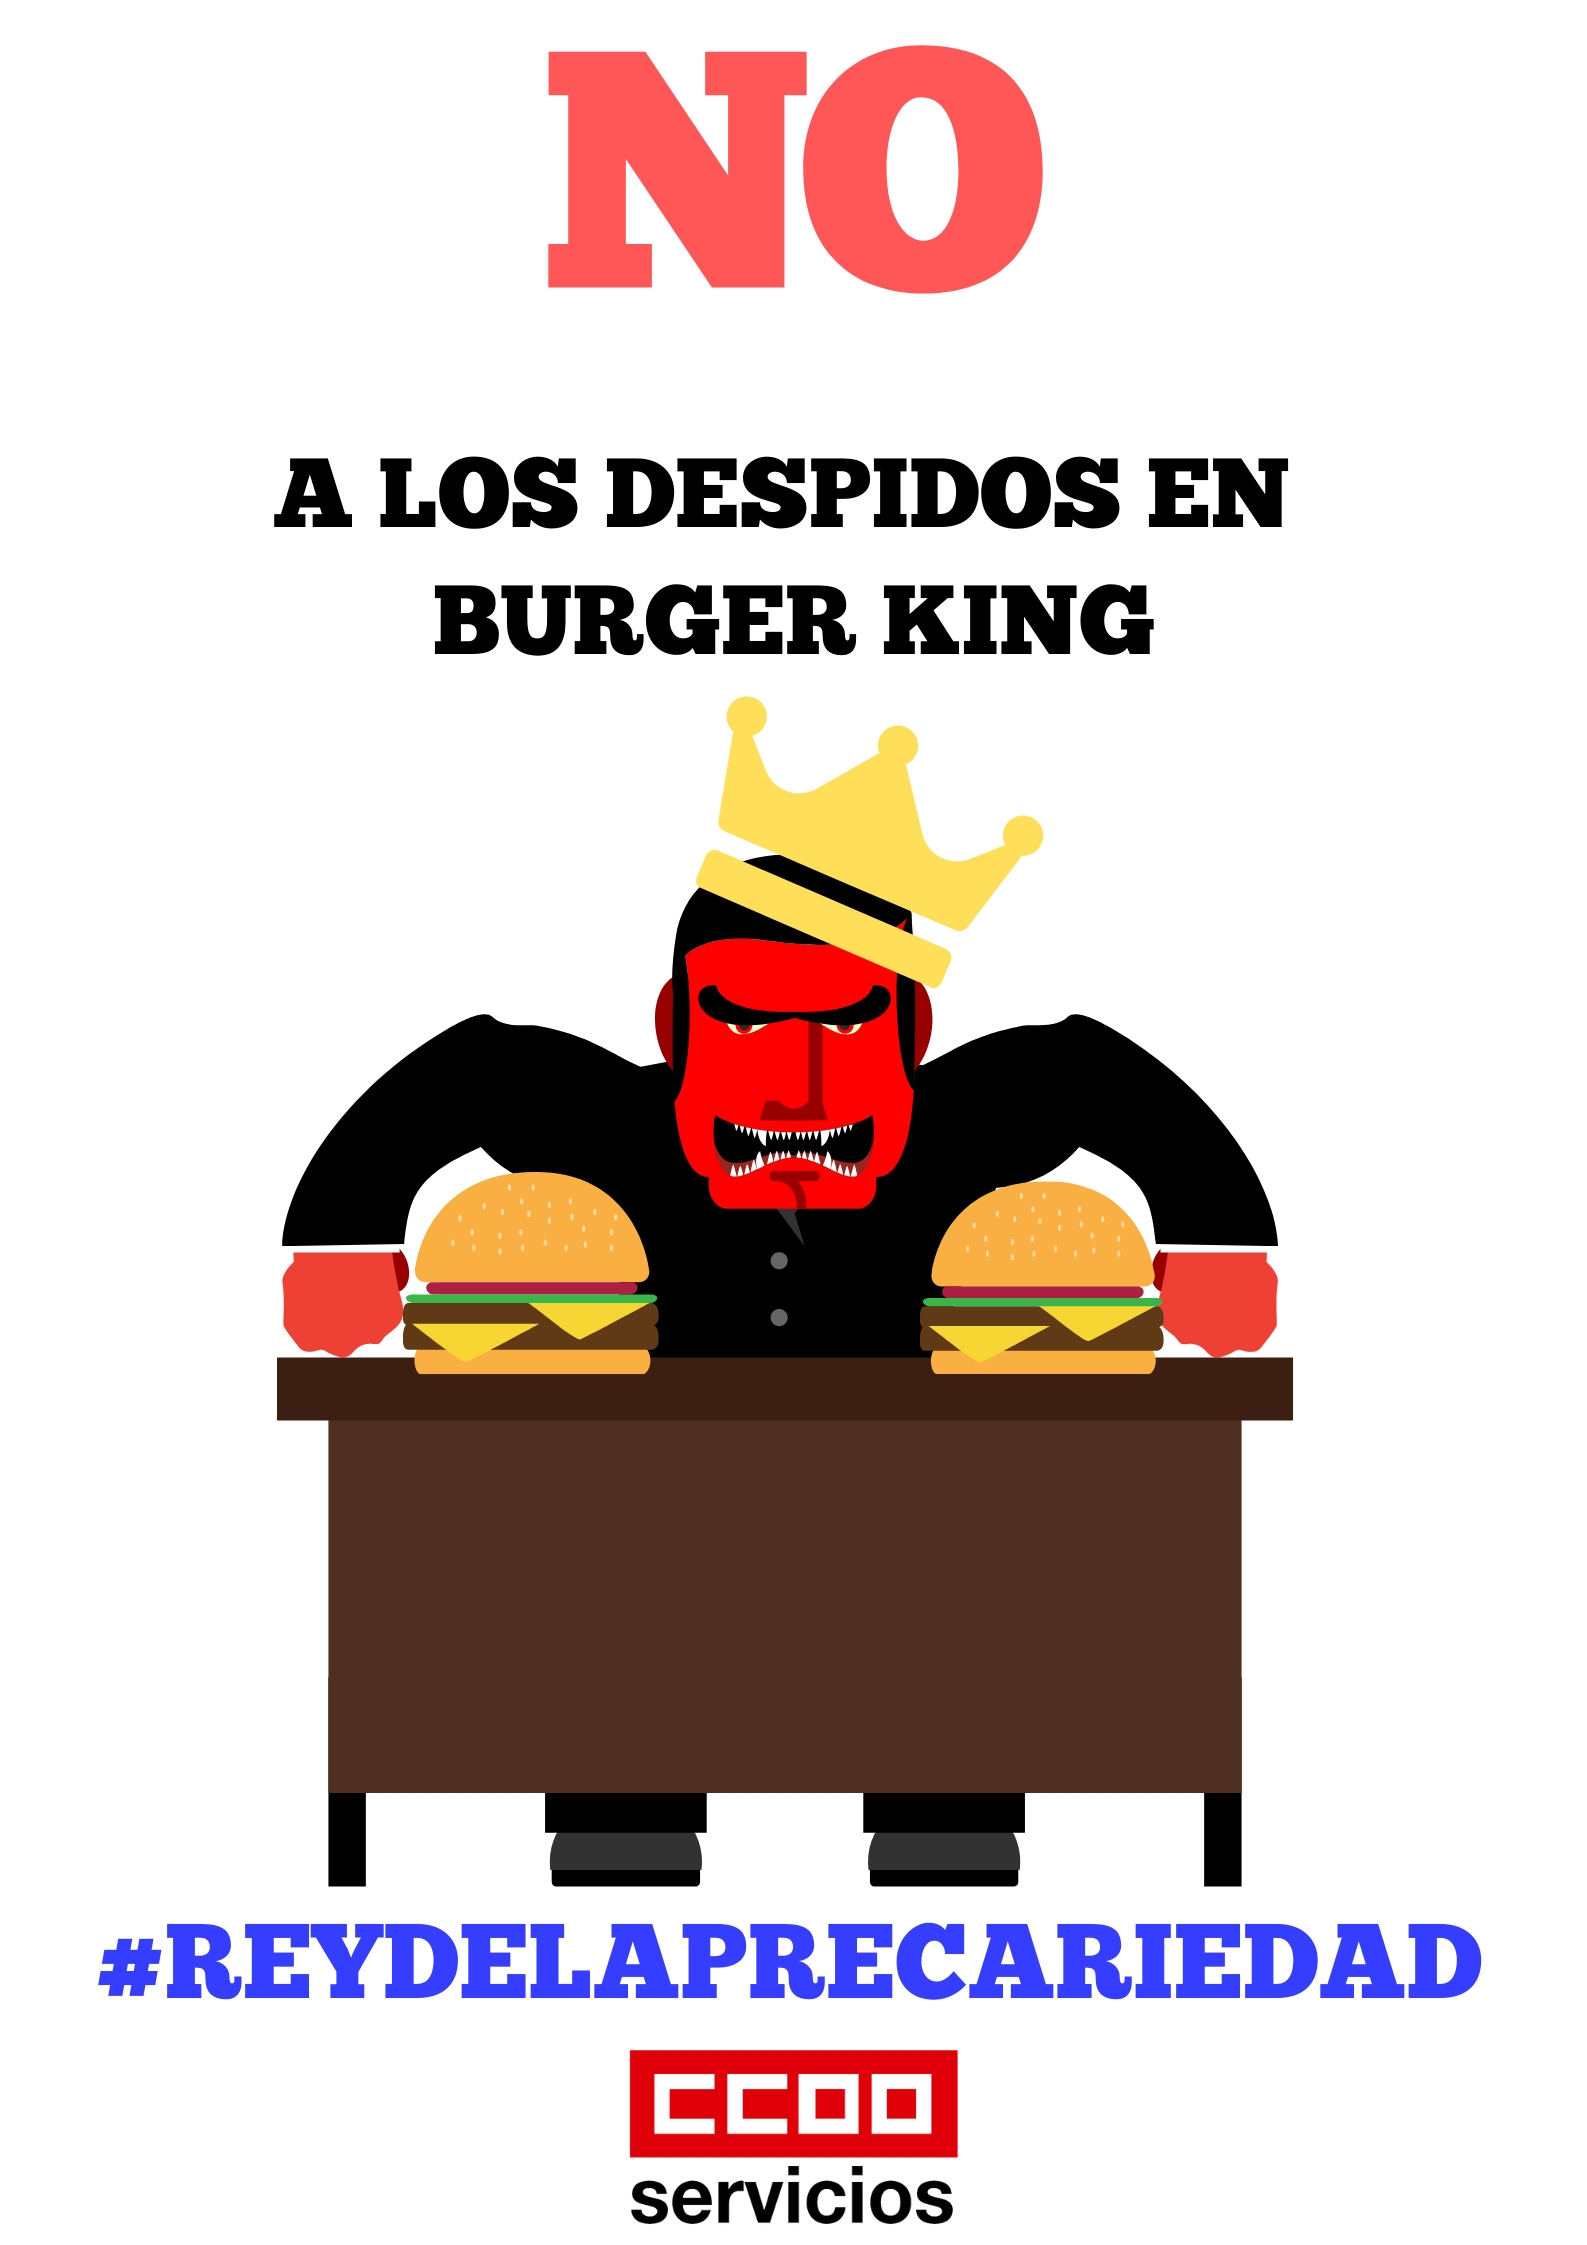 No%20a%20los%20despidos%20Burger%20King%20Spain_0